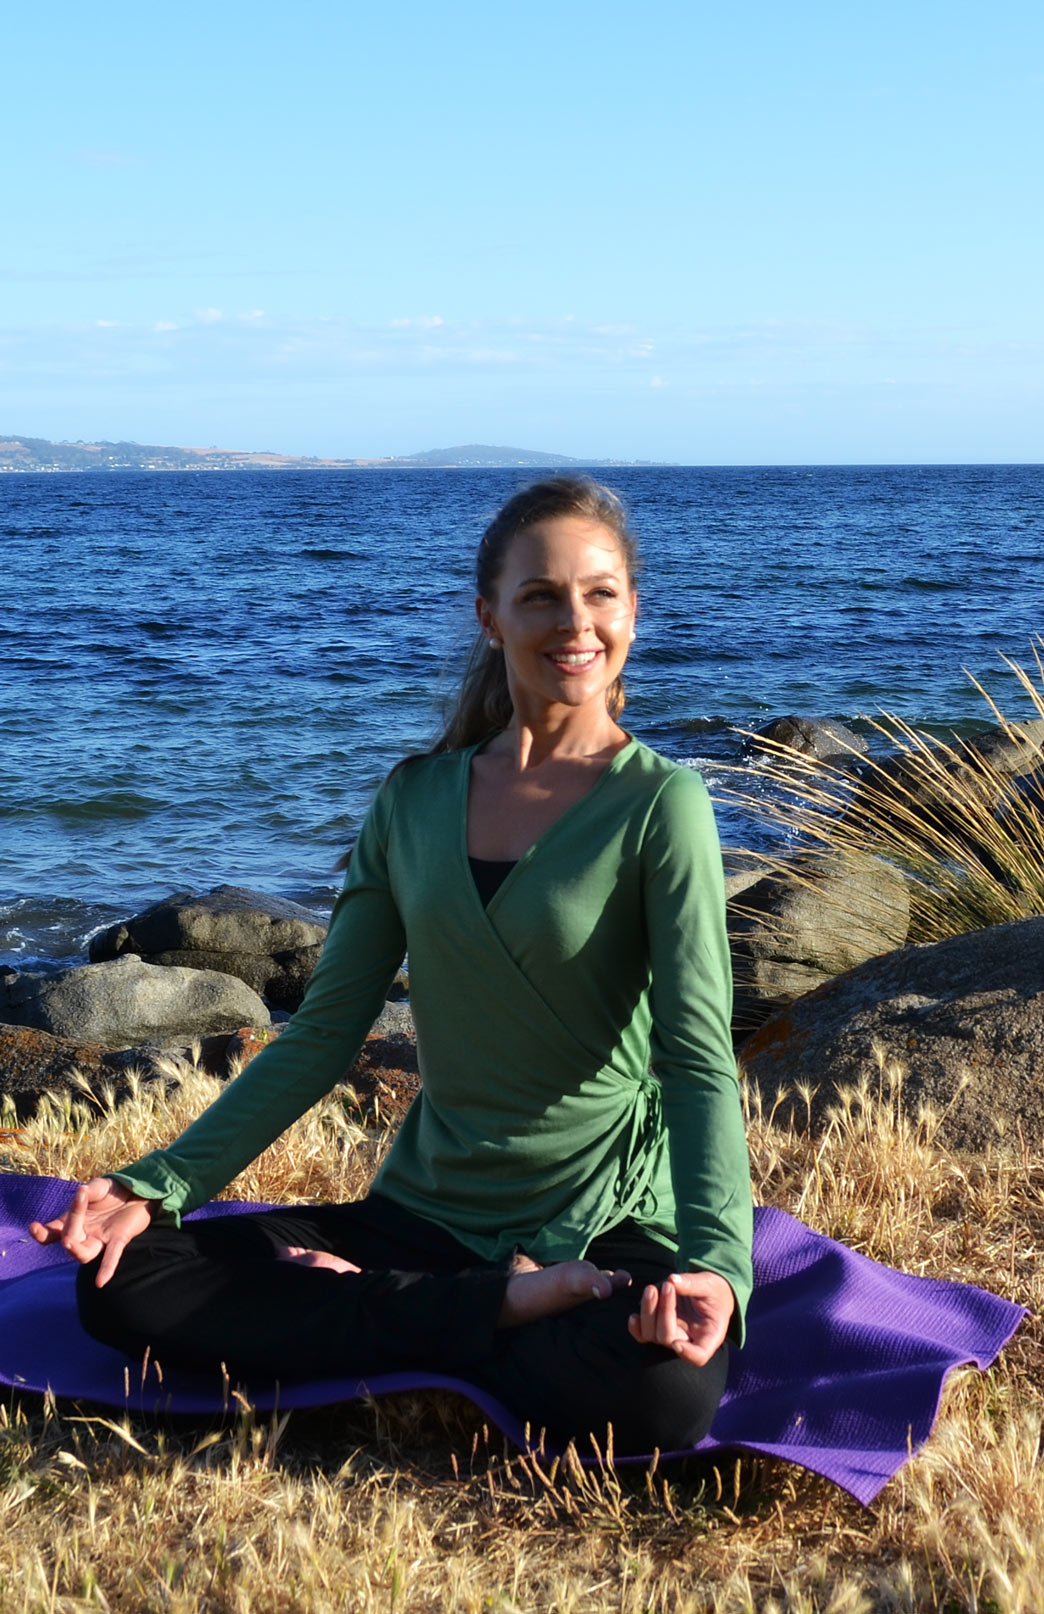 Wrap Top - Women's Artichoke Green Long Sleeved Wrap Top with Ties - Smitten Merino Tasmania Australia